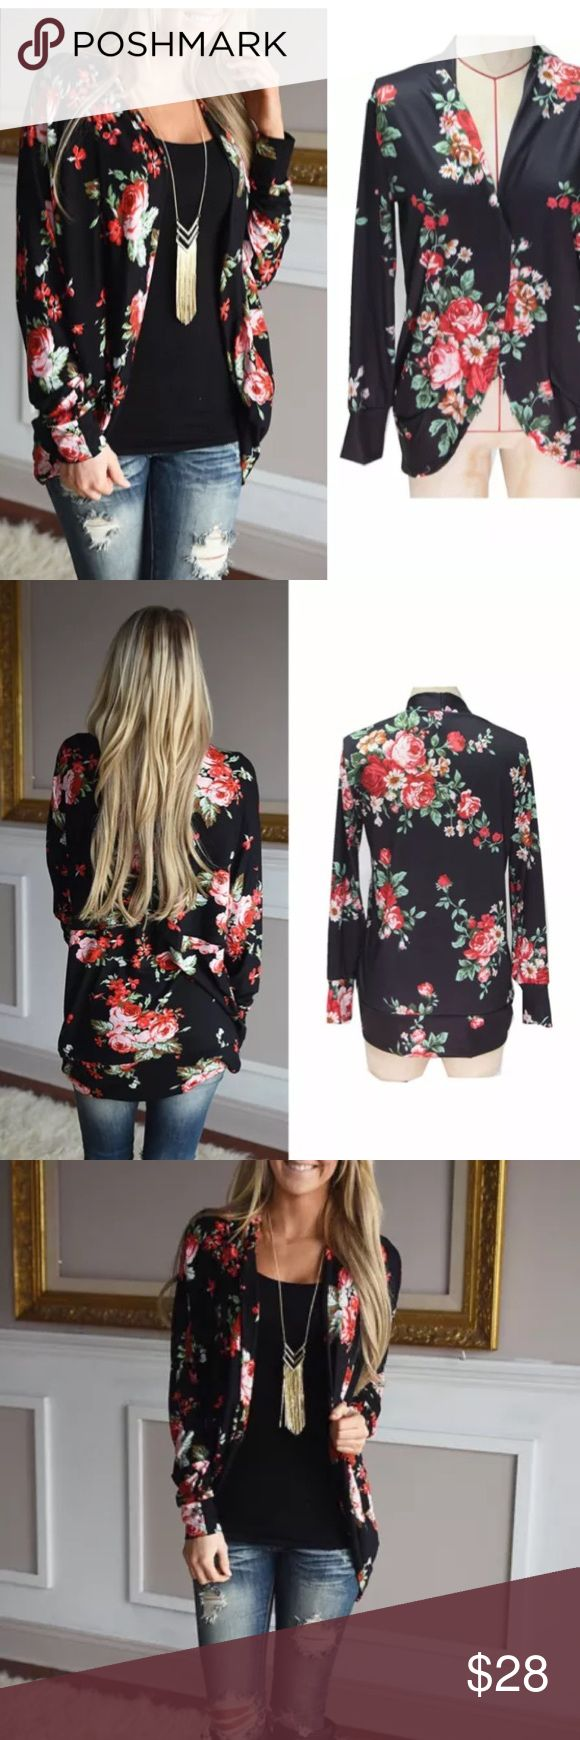 Floral blazer cardigan Complete the look with this floral blazer cardigan. Long sleeves 100% cotton blend. Sweaters Cardigans